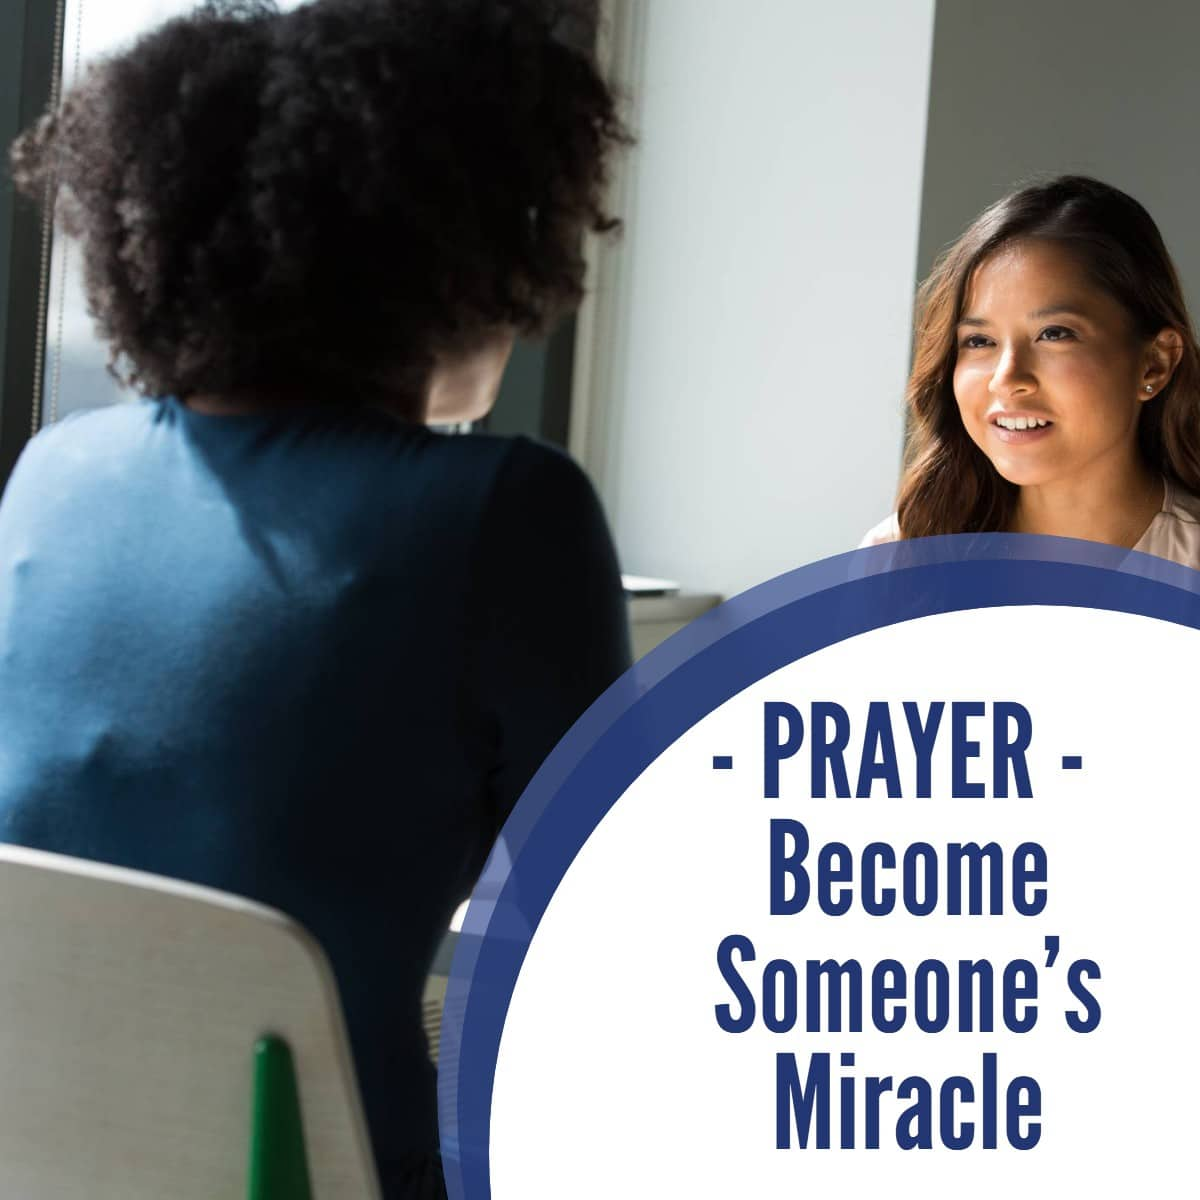 Prayer: Become Someone's Miracle